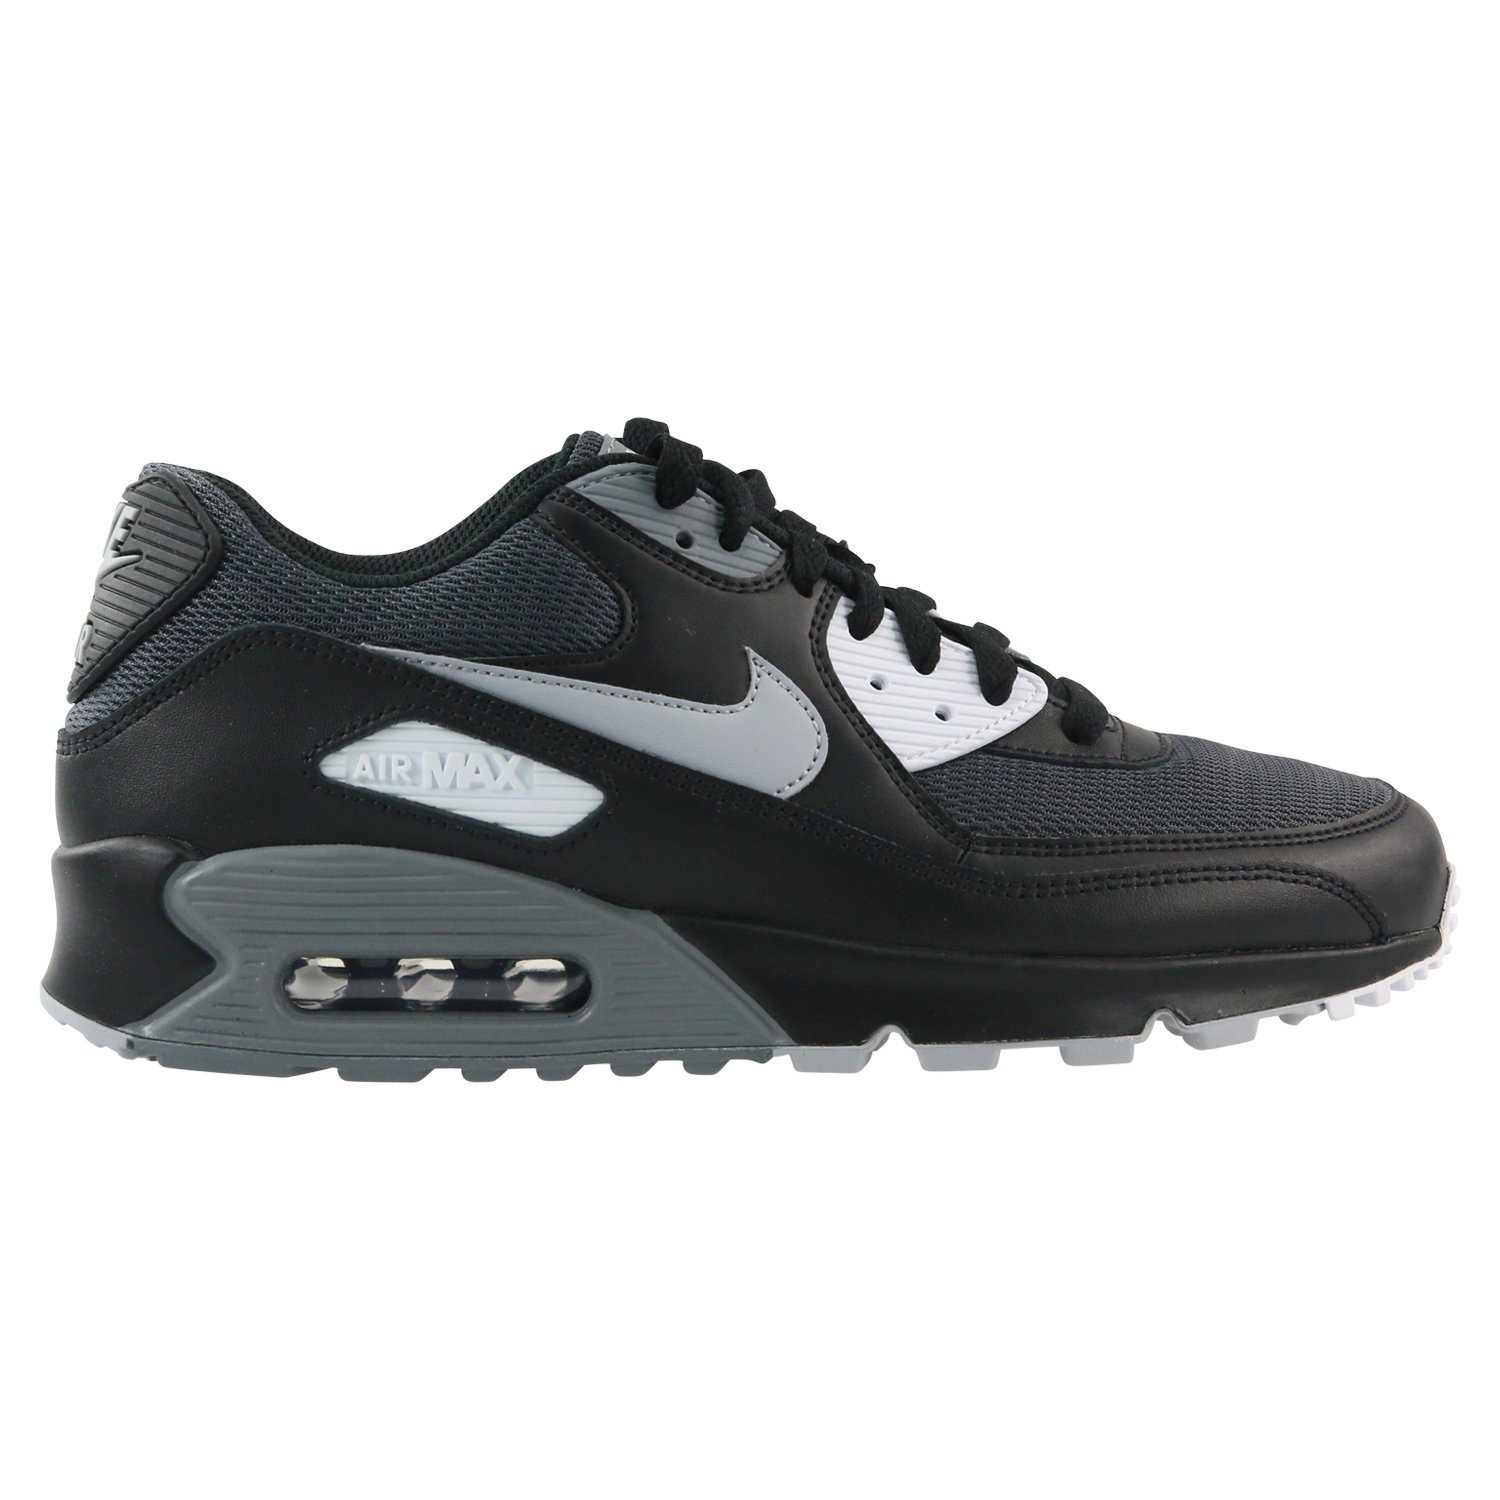 uk availability ebd7a 6b5c0 Galleon - Nike Air Max 90 Essential Mens Running Trainers AJ1285 Sneakers  Shoes (UK 6 US 7 EU 40, Black Wolf Grey Dark Grey 003)